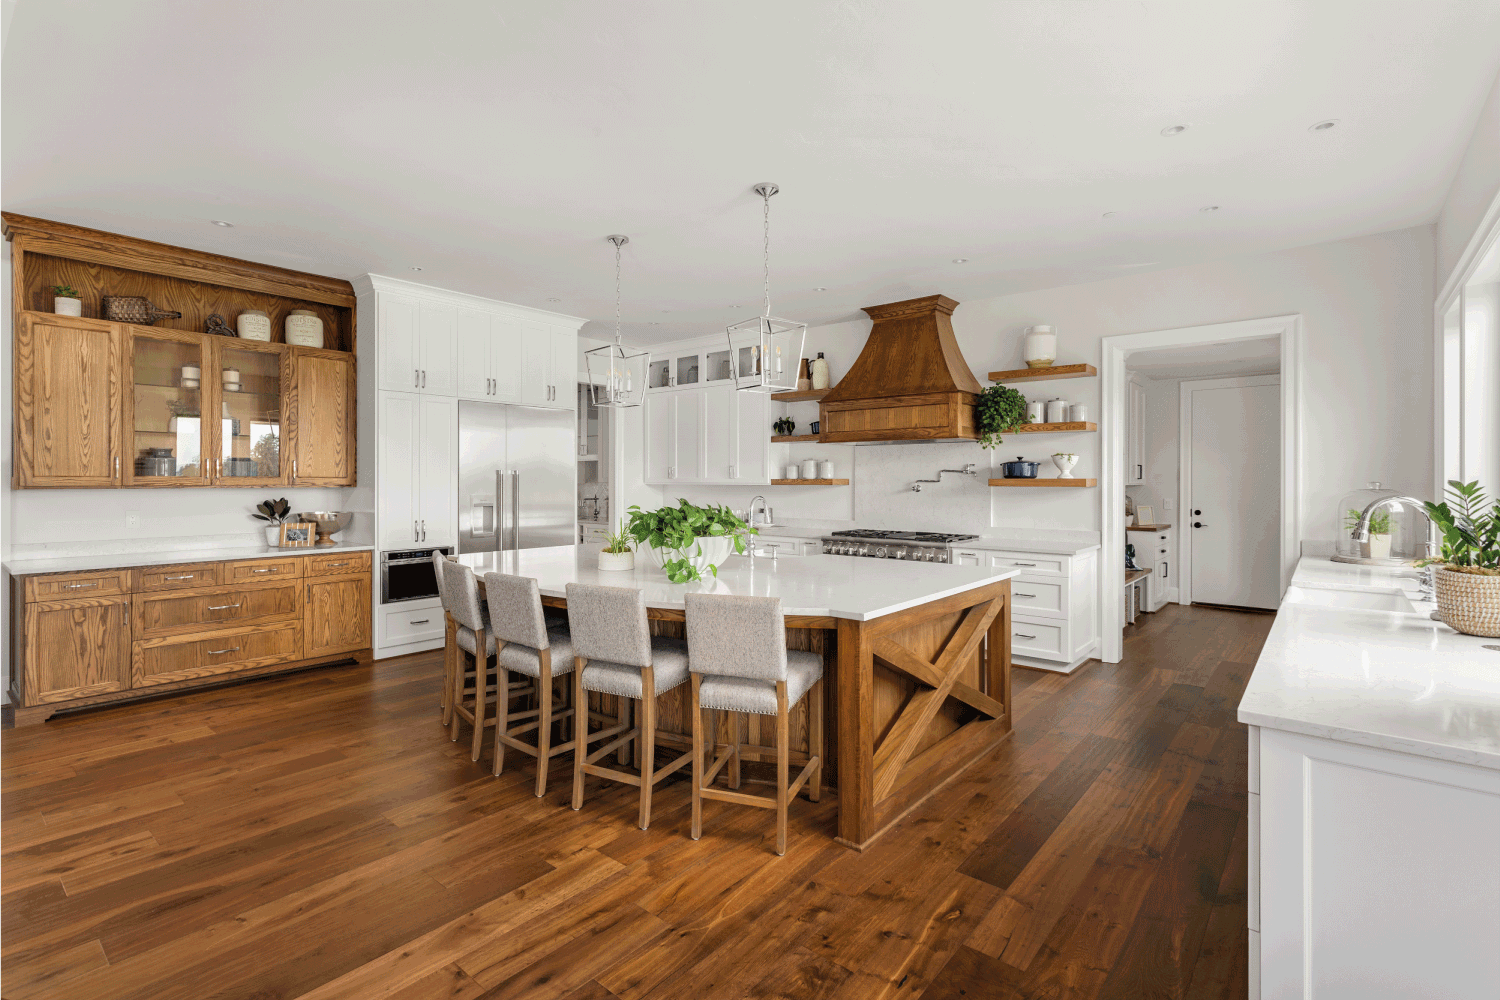 kitchen in newly constructed luxury home with wood tones and whites